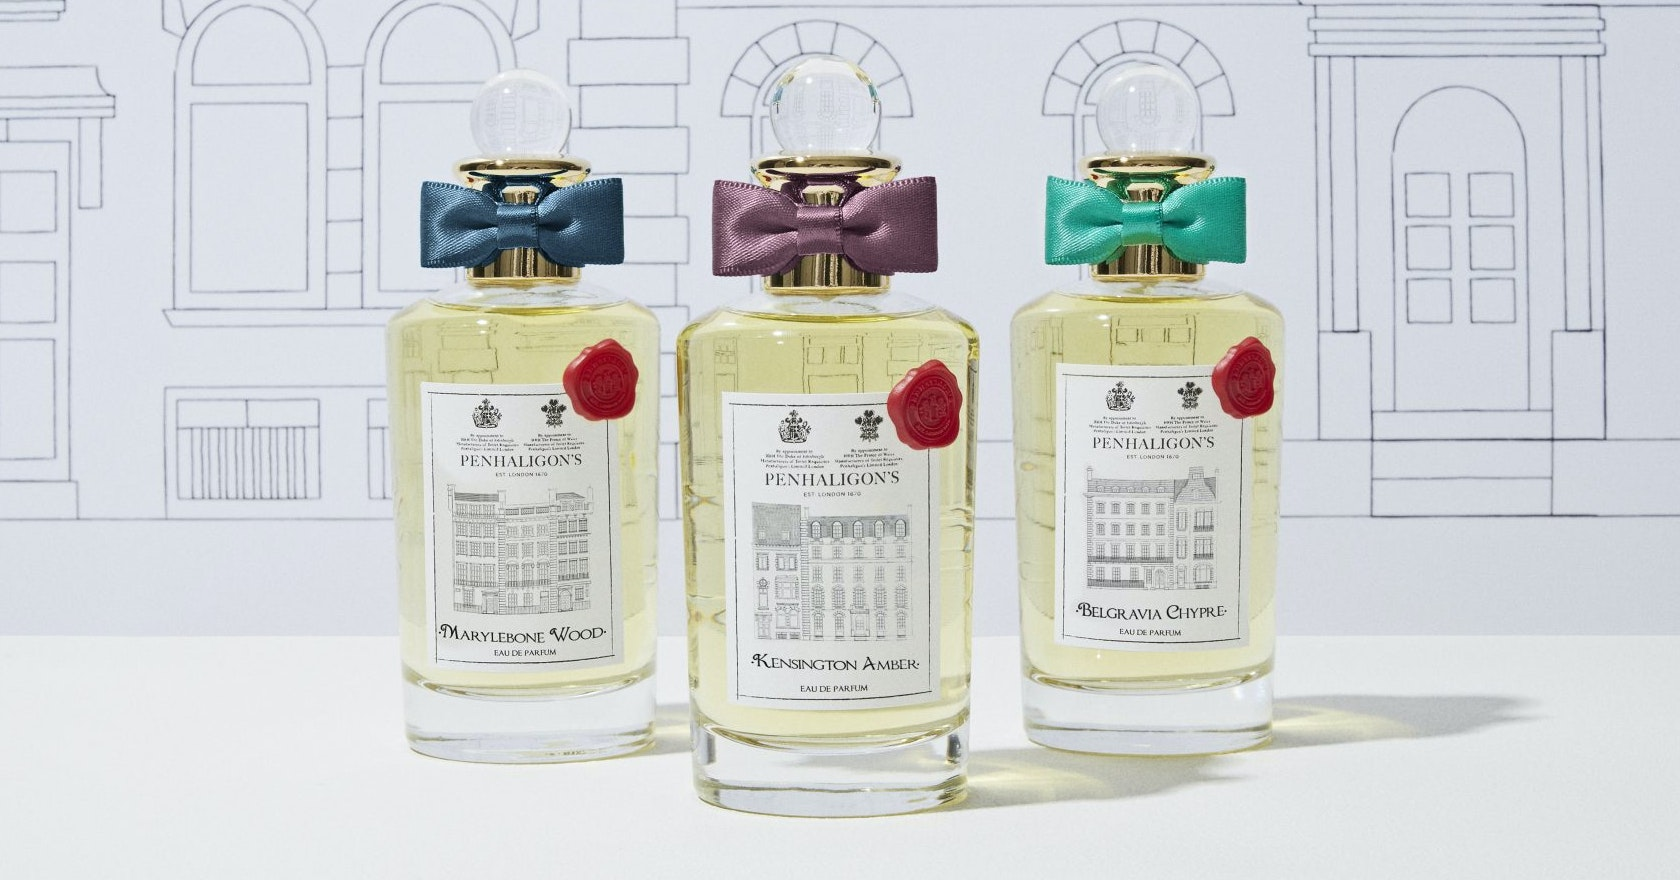 This Simple Quiz Can Help You Discover Your Signature Scent